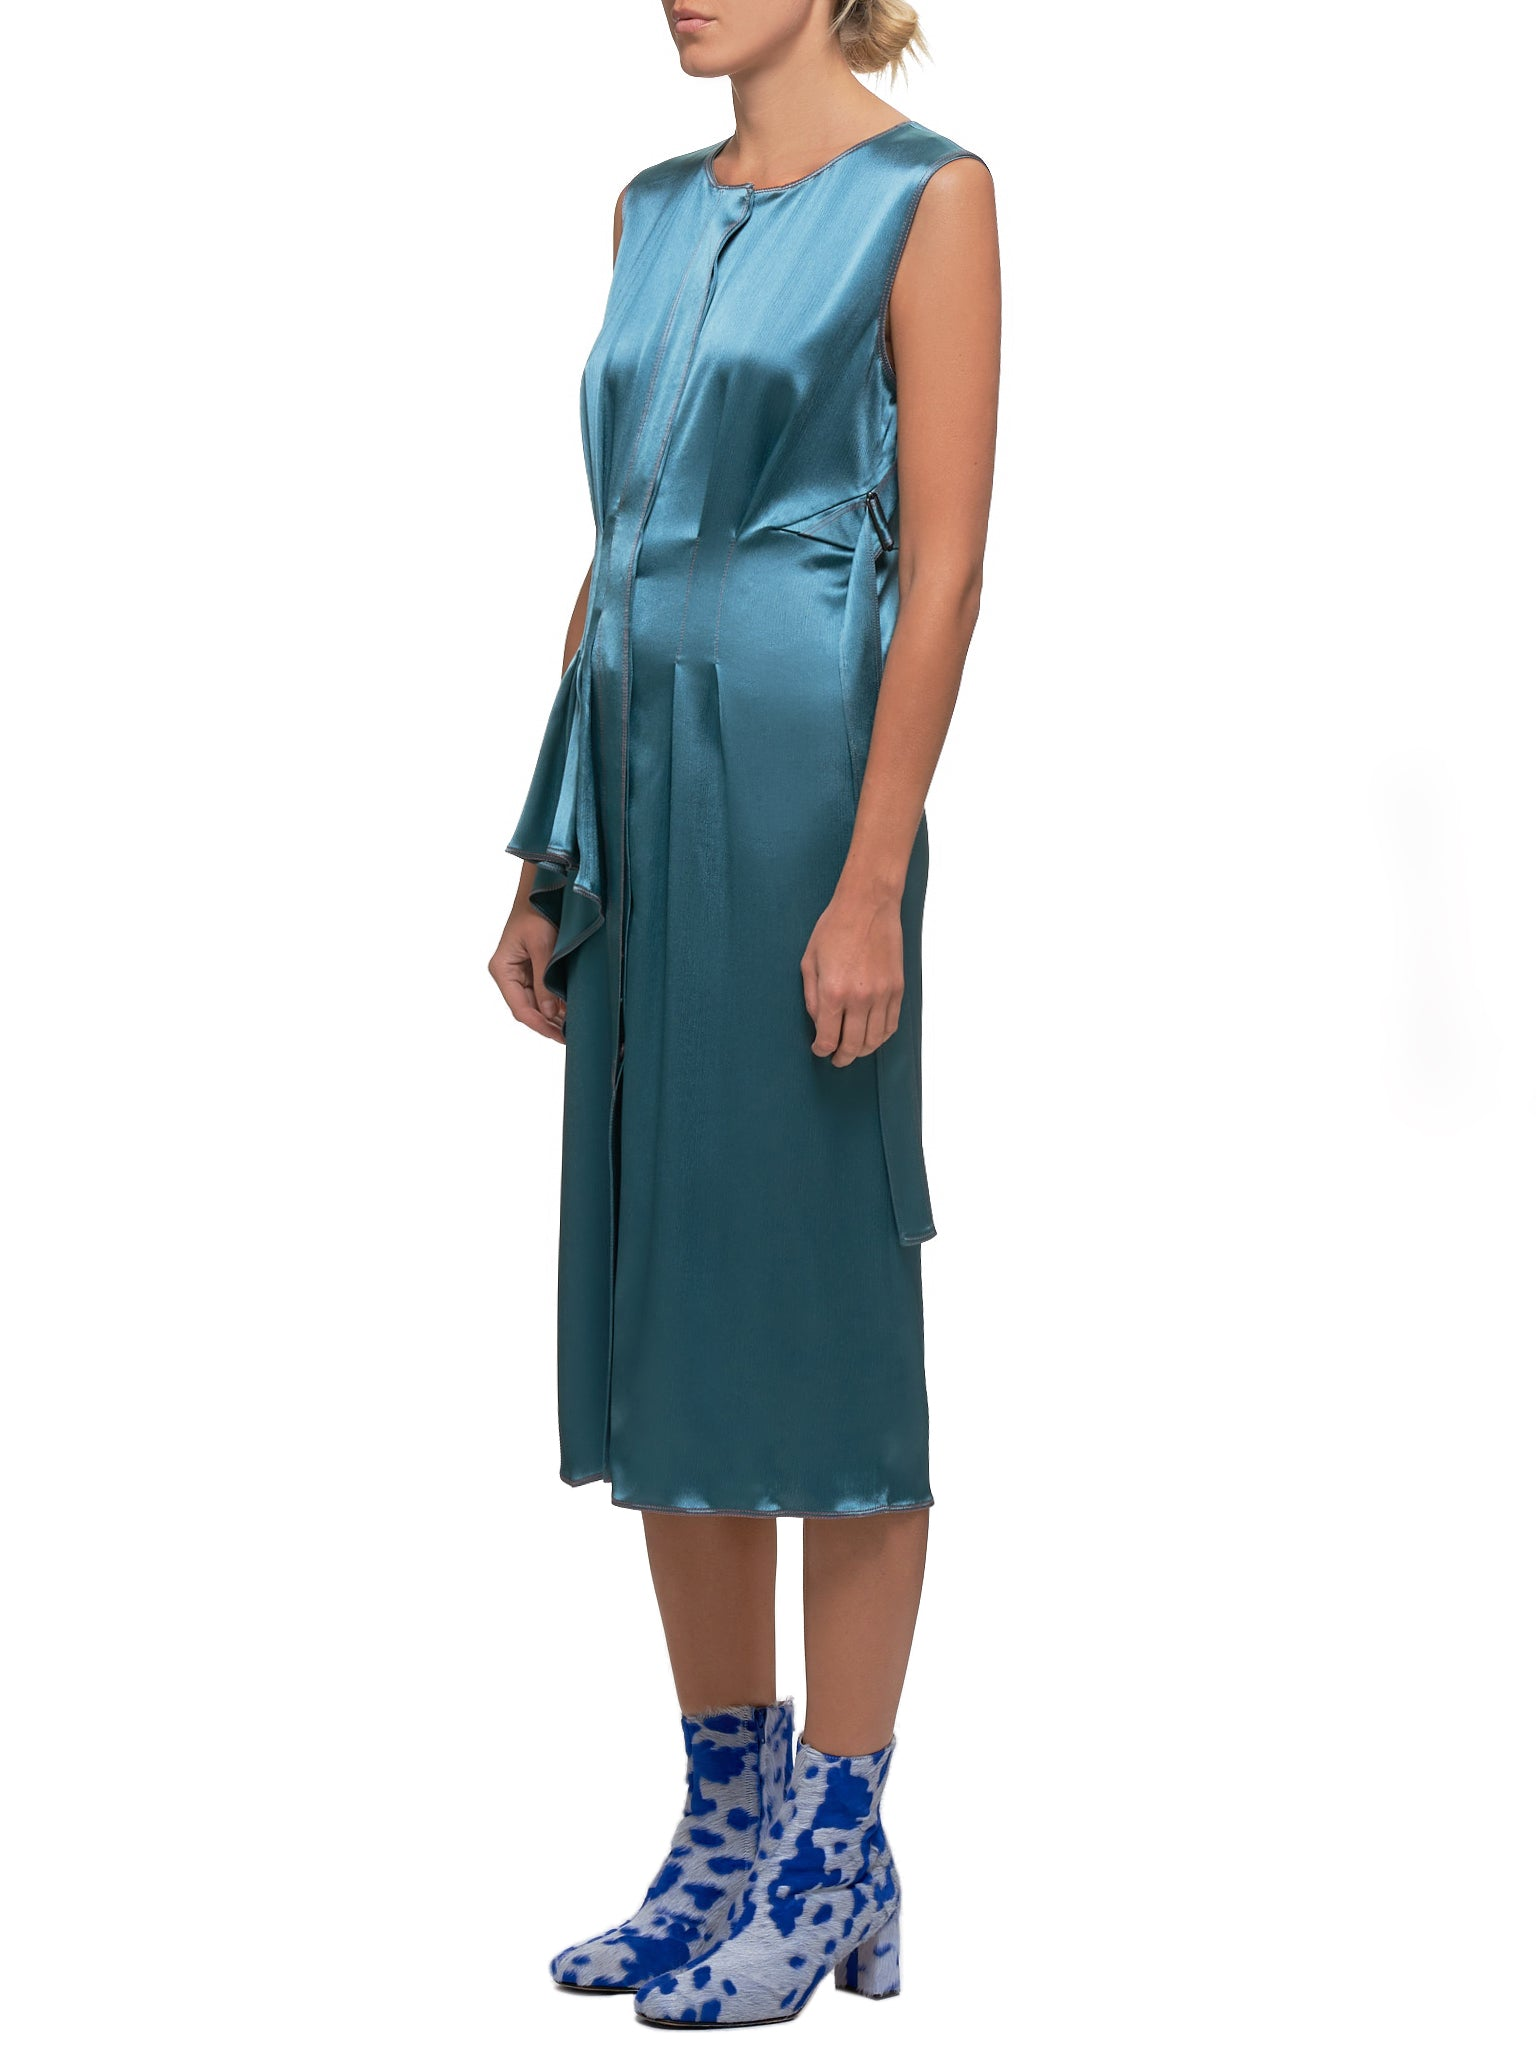 Sies Marjan Dress - Hlorenzo Side